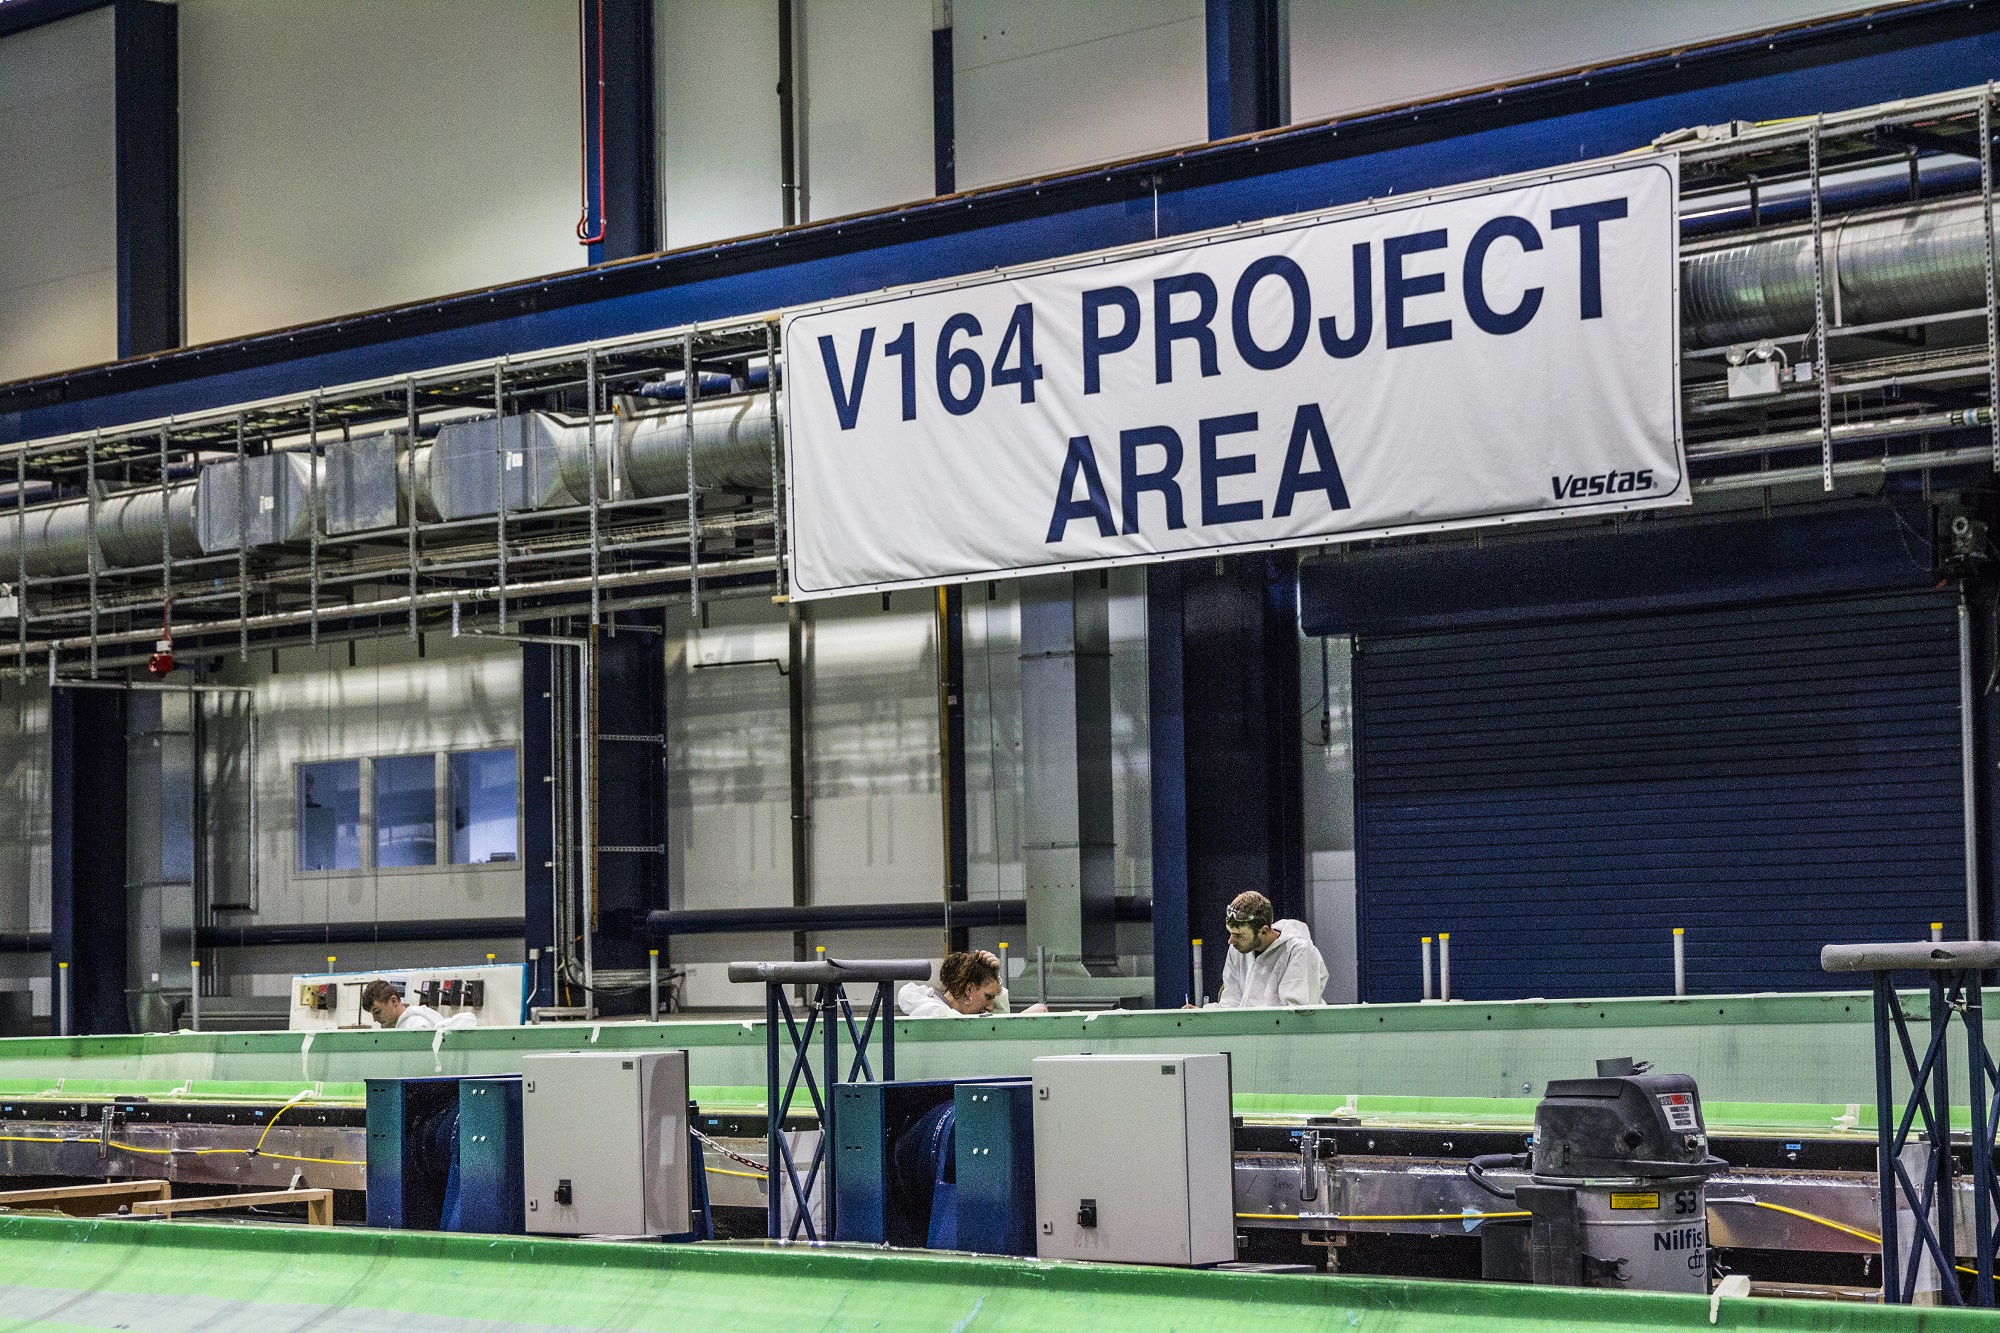 MHI Vestas will hire 200 employees for blade manufacture | Offshore Wind Industry